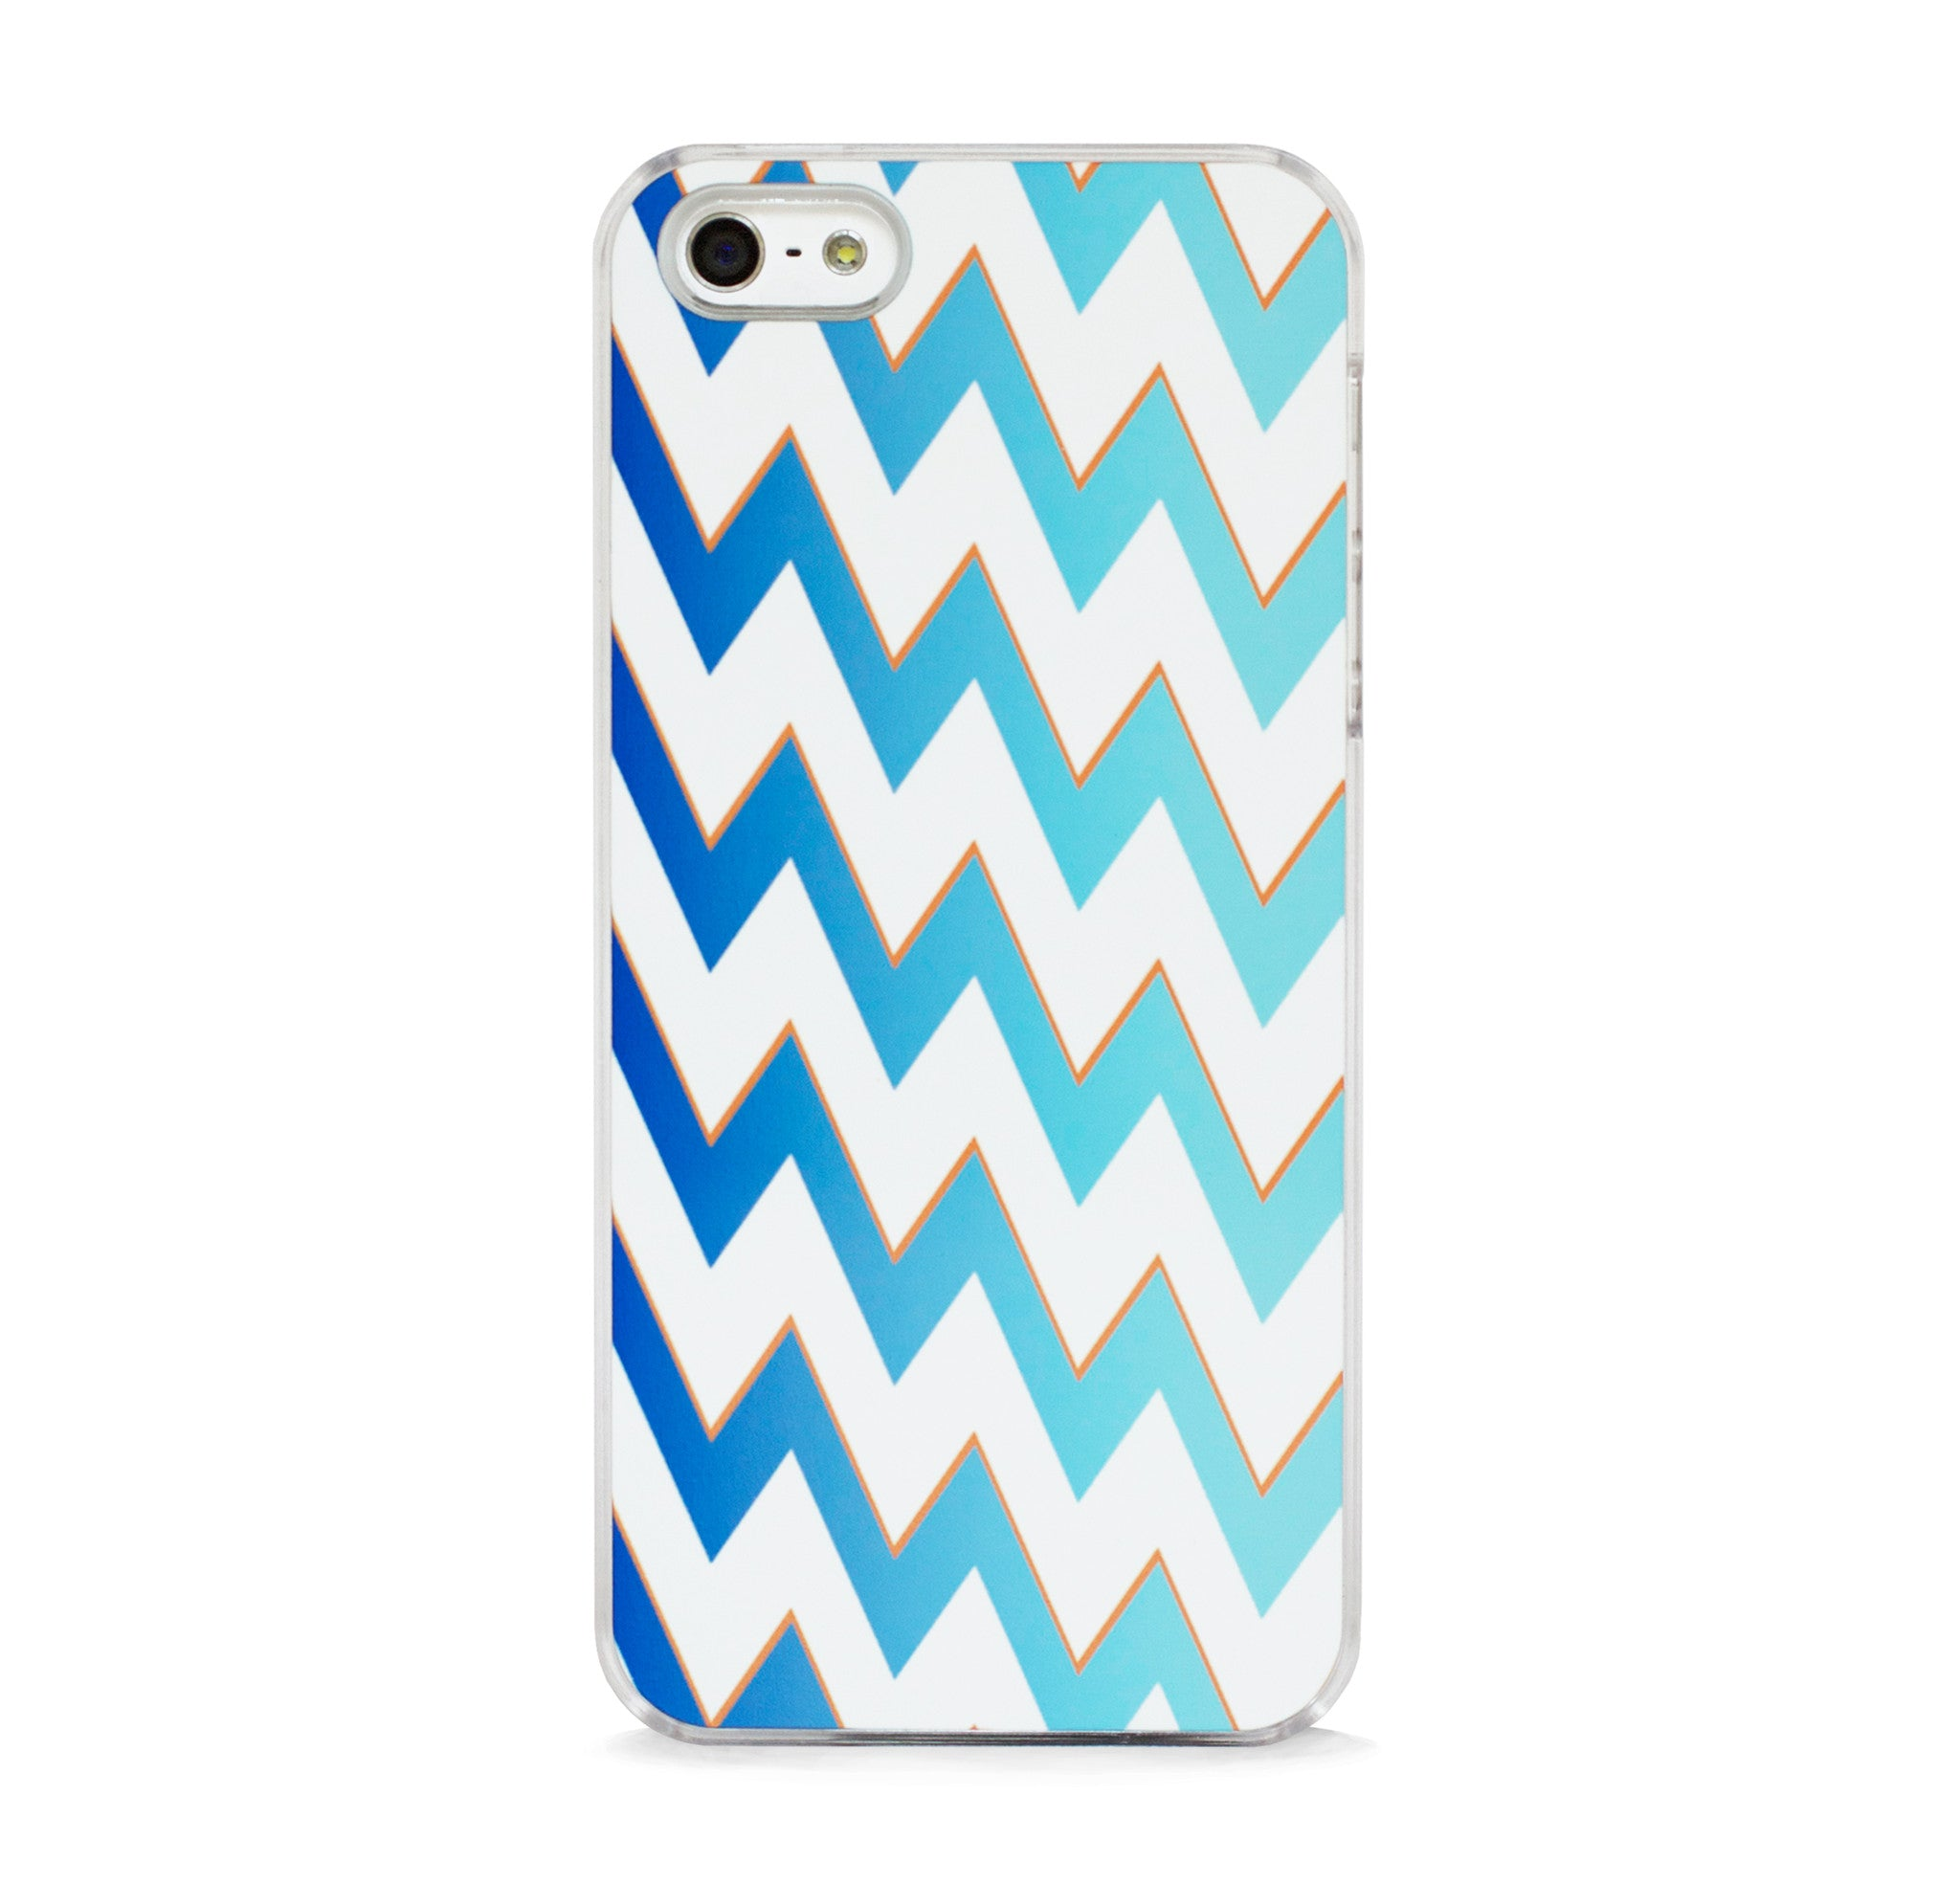 DISCO CHEVRON BLUE FOR IPHONE 5/5S